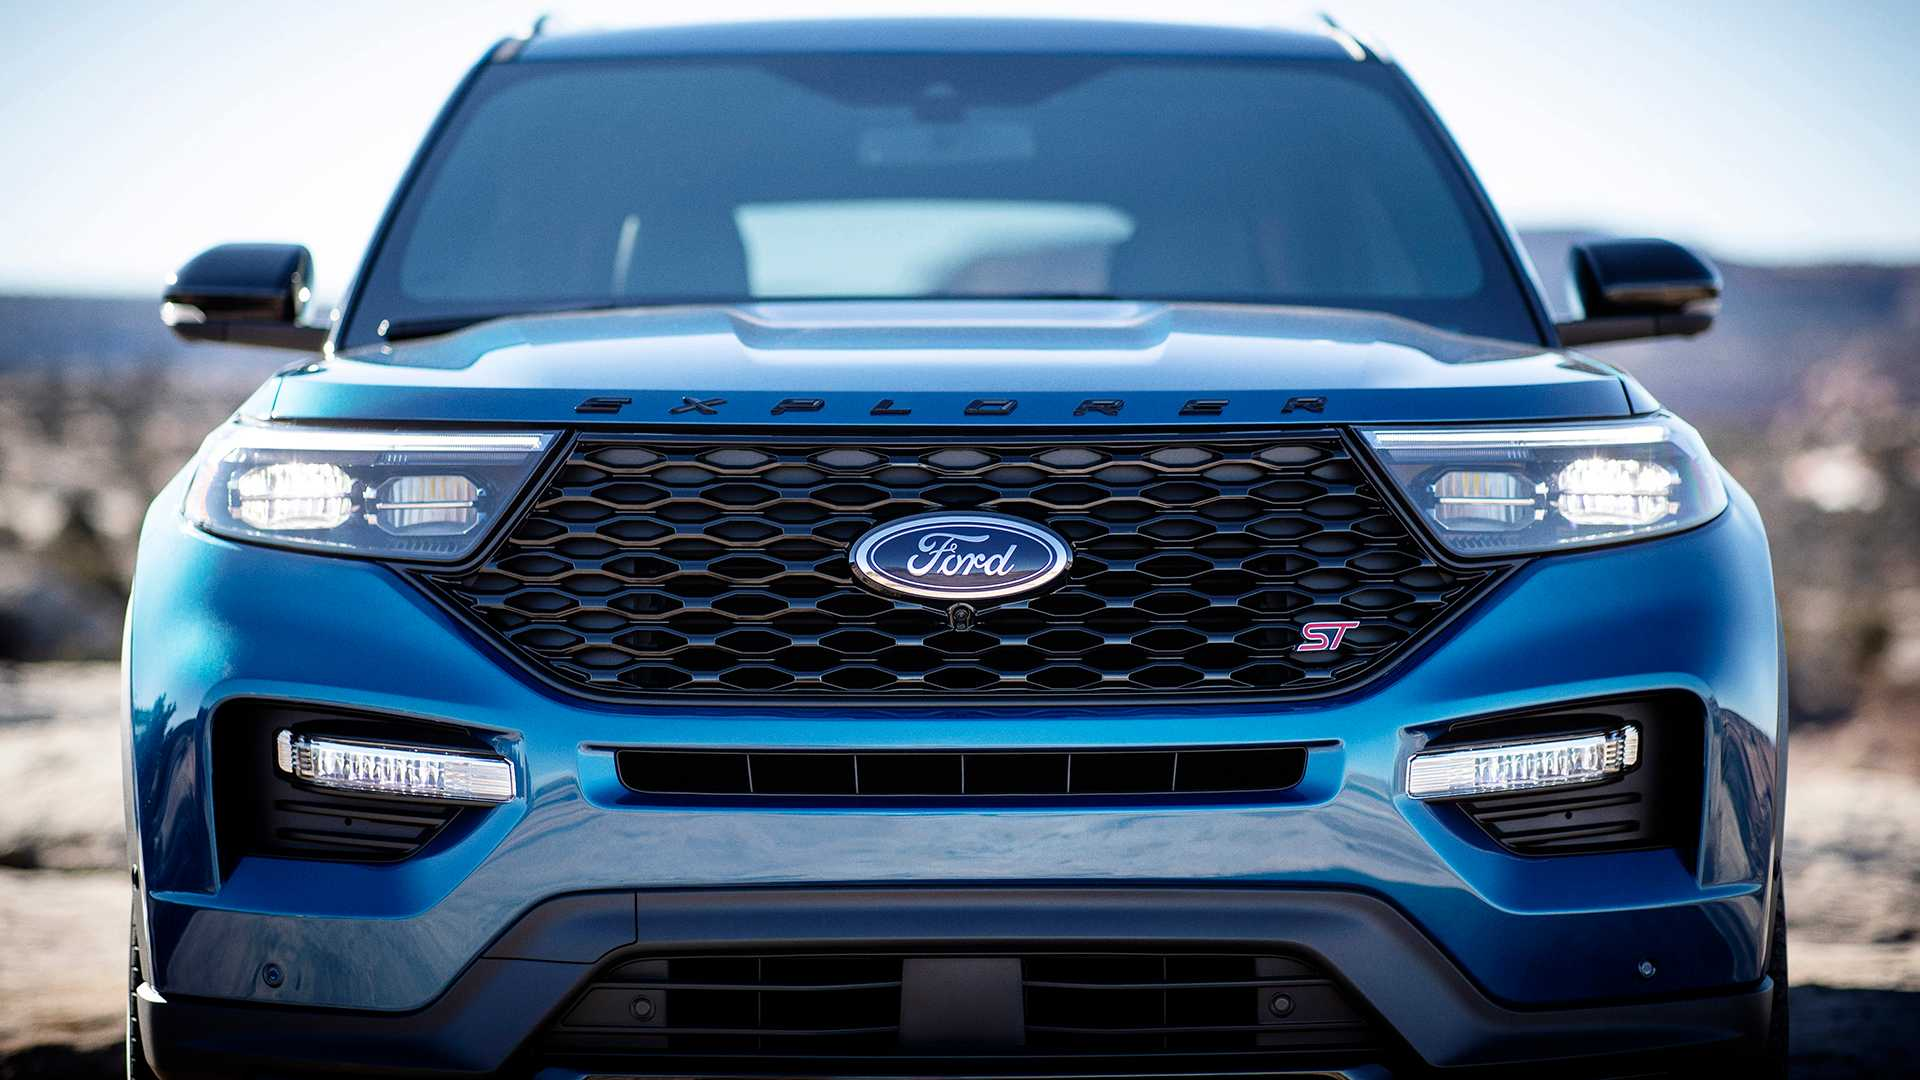 64 Great Price Of 2020 Ford Explorer Release Date by Price Of 2020 Ford Explorer